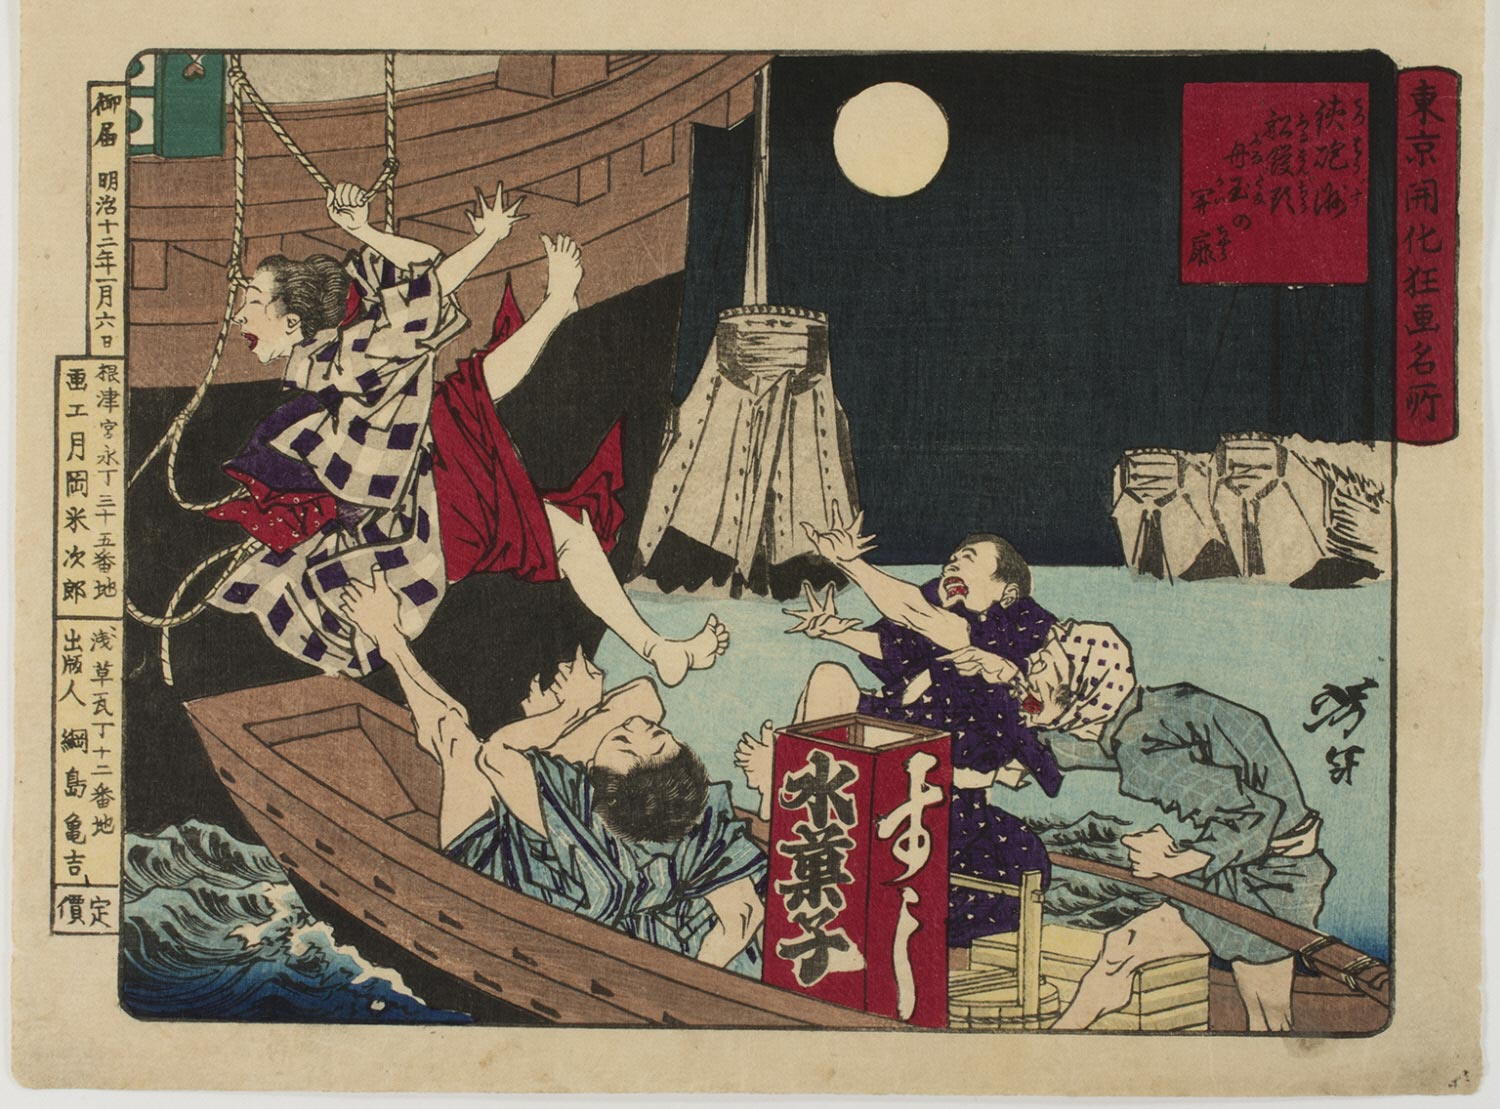 A Boat Prostitute Begins Business at Teppōzu, from the series Comic Pictures of Famous Places Amid the Civilization of Tōkyō (Tōkyō kaika kyōga meisho)